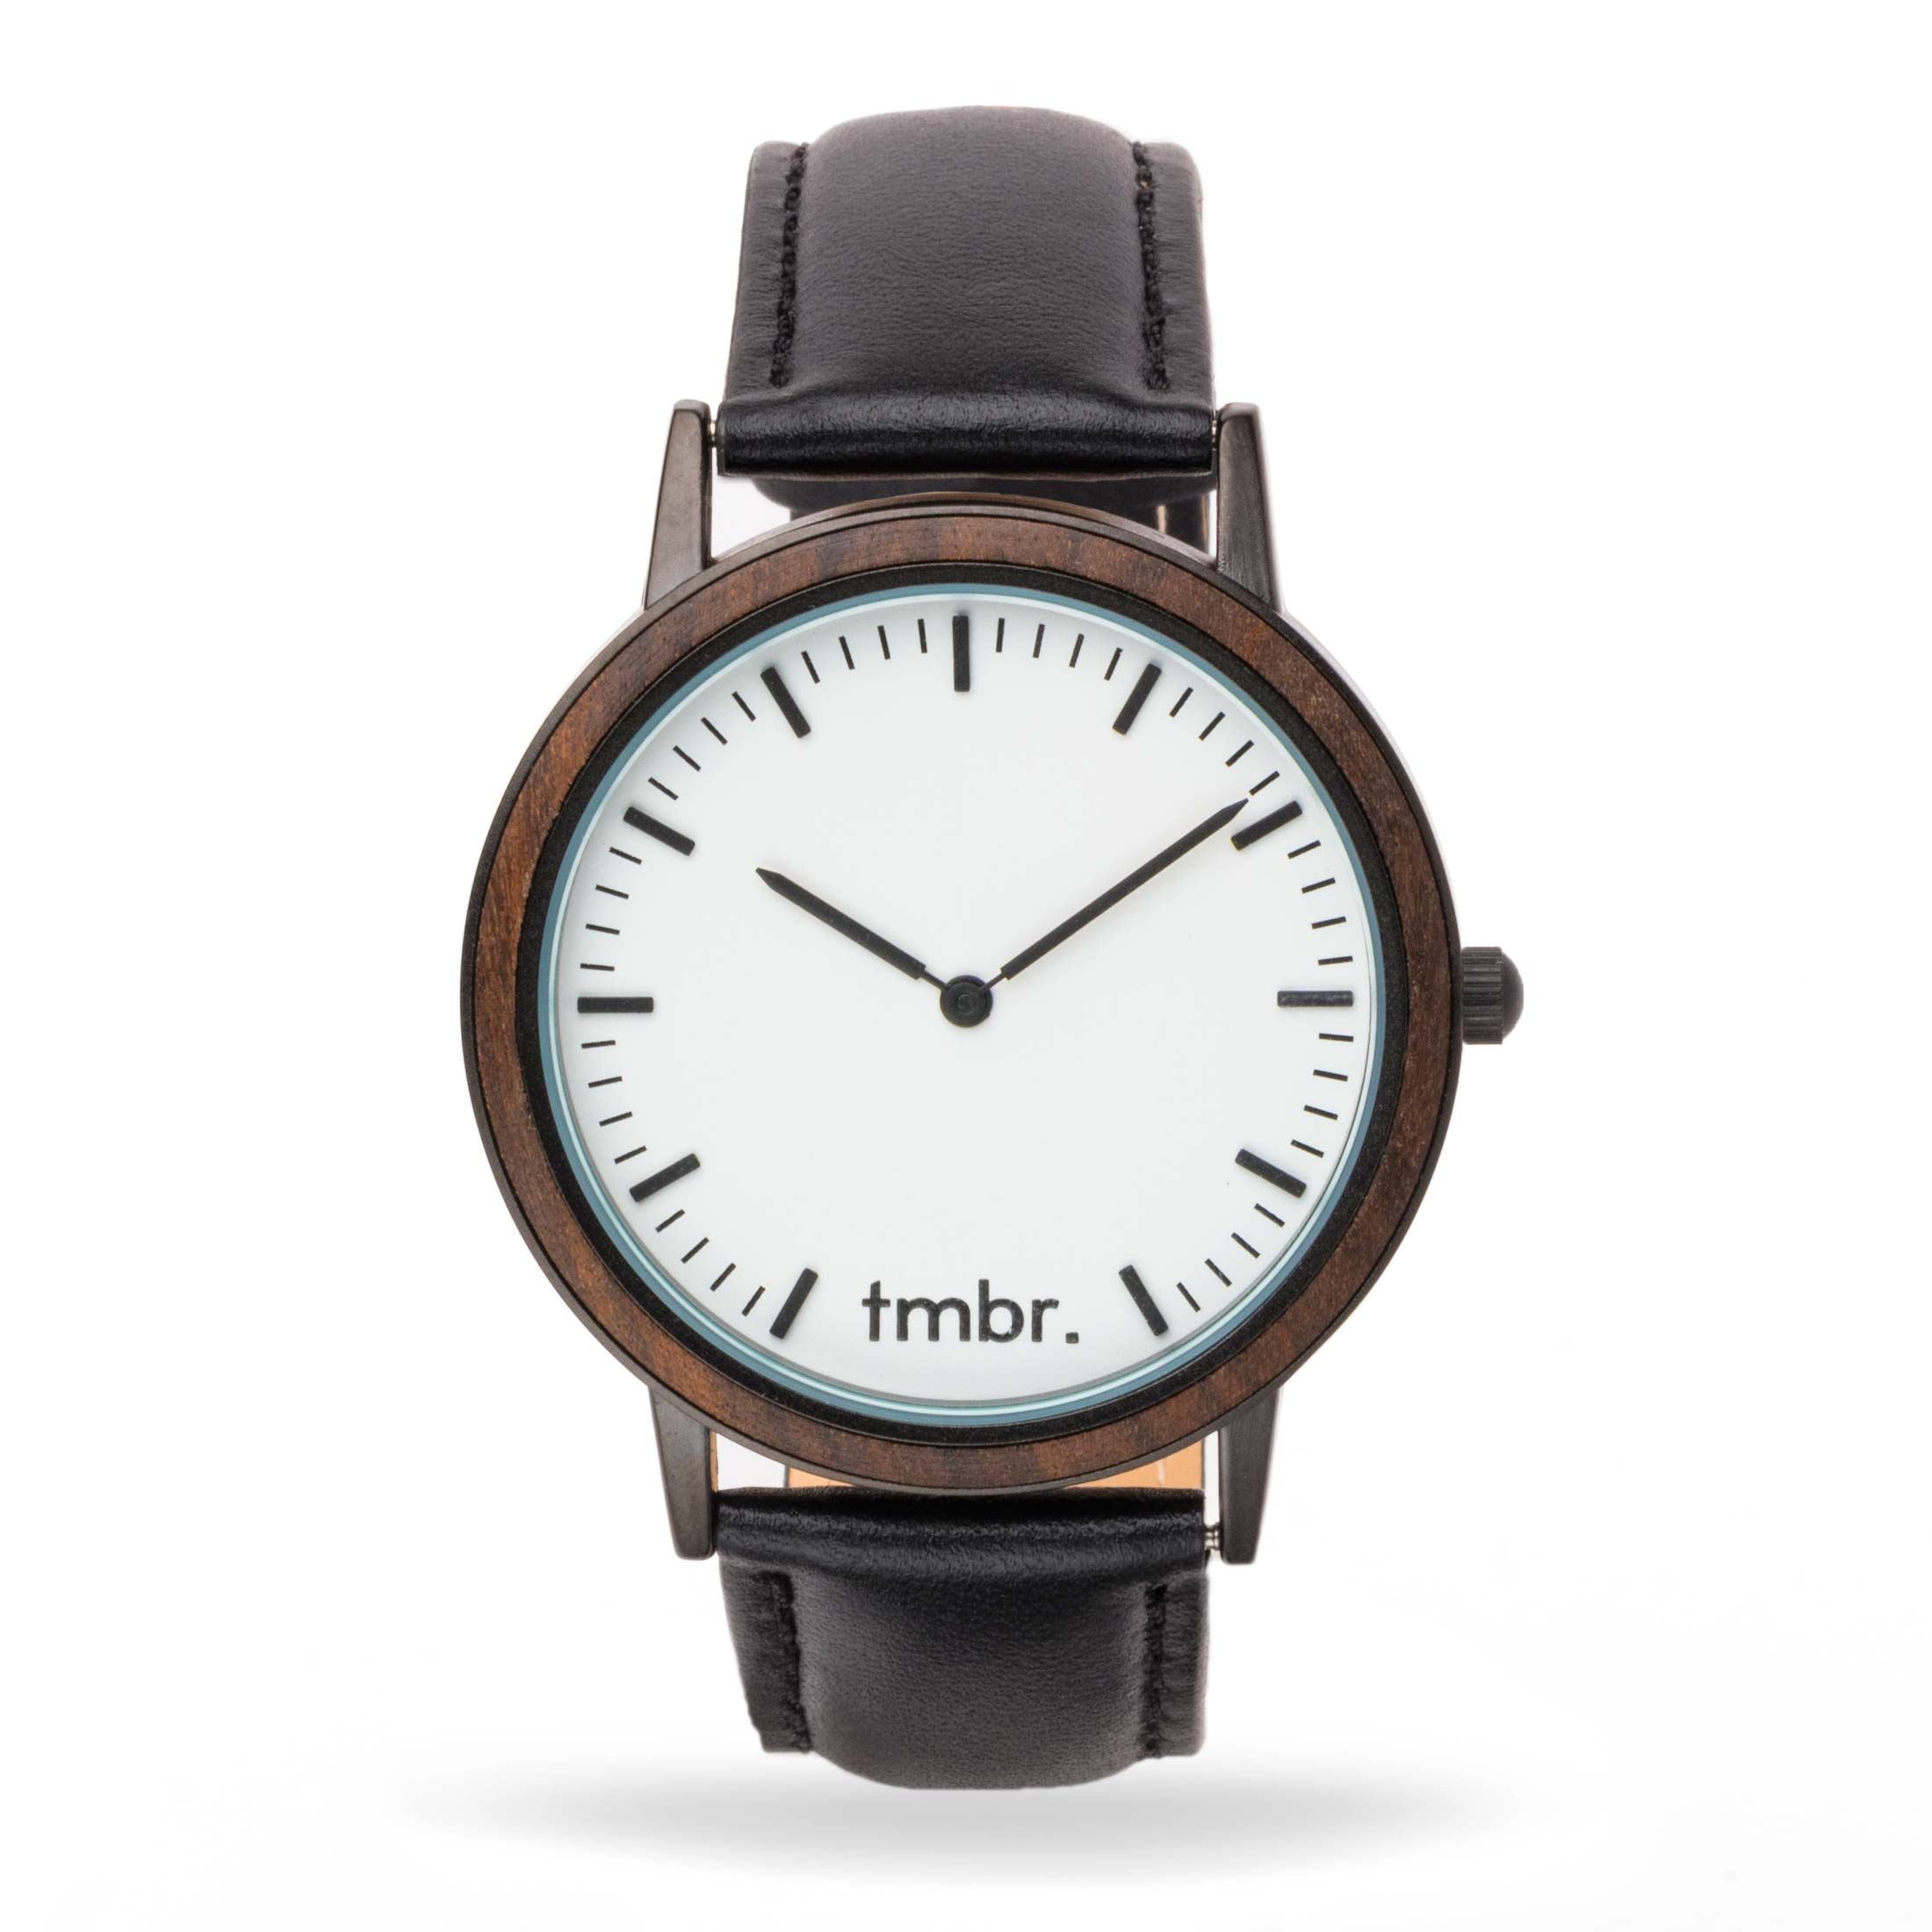 Engraved Tmbr Minimalist Wood Watch